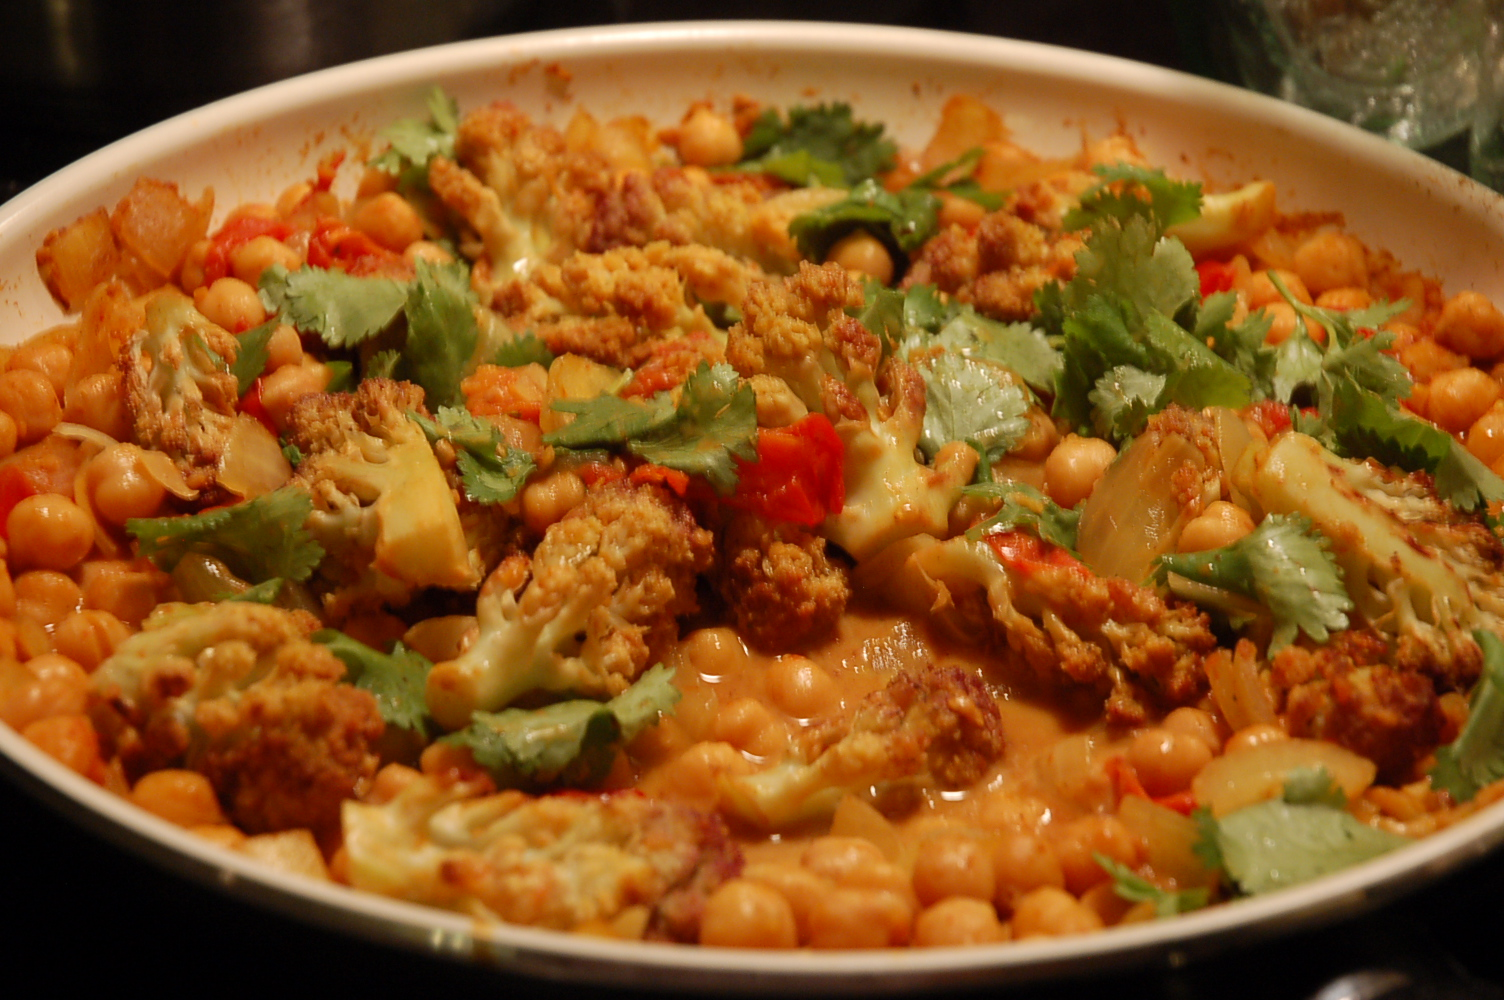 ... Eats: Meatless Chickpea Curry with Roasted Cauliflower and Tomatoes